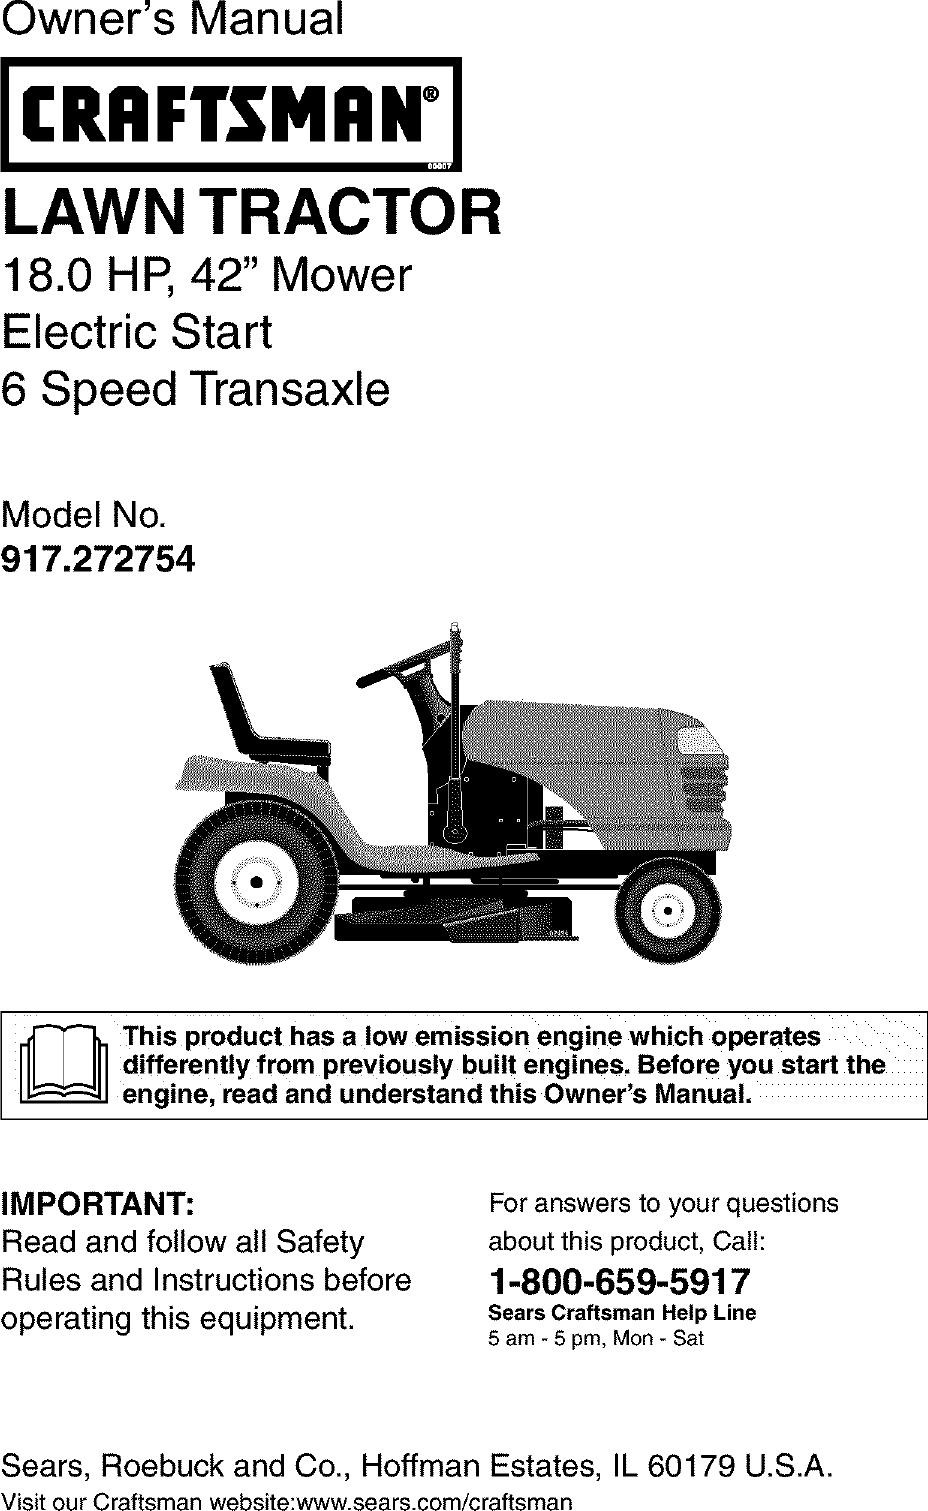 Craftsman 65 Lawn Mower Manual Ebook Weed Eater Pl200 Parts List And Diagram Type 1 Ereplacementparts Array 917272754 User Tractor Manuals Guides L0304200 Rh Usermanual Wiki